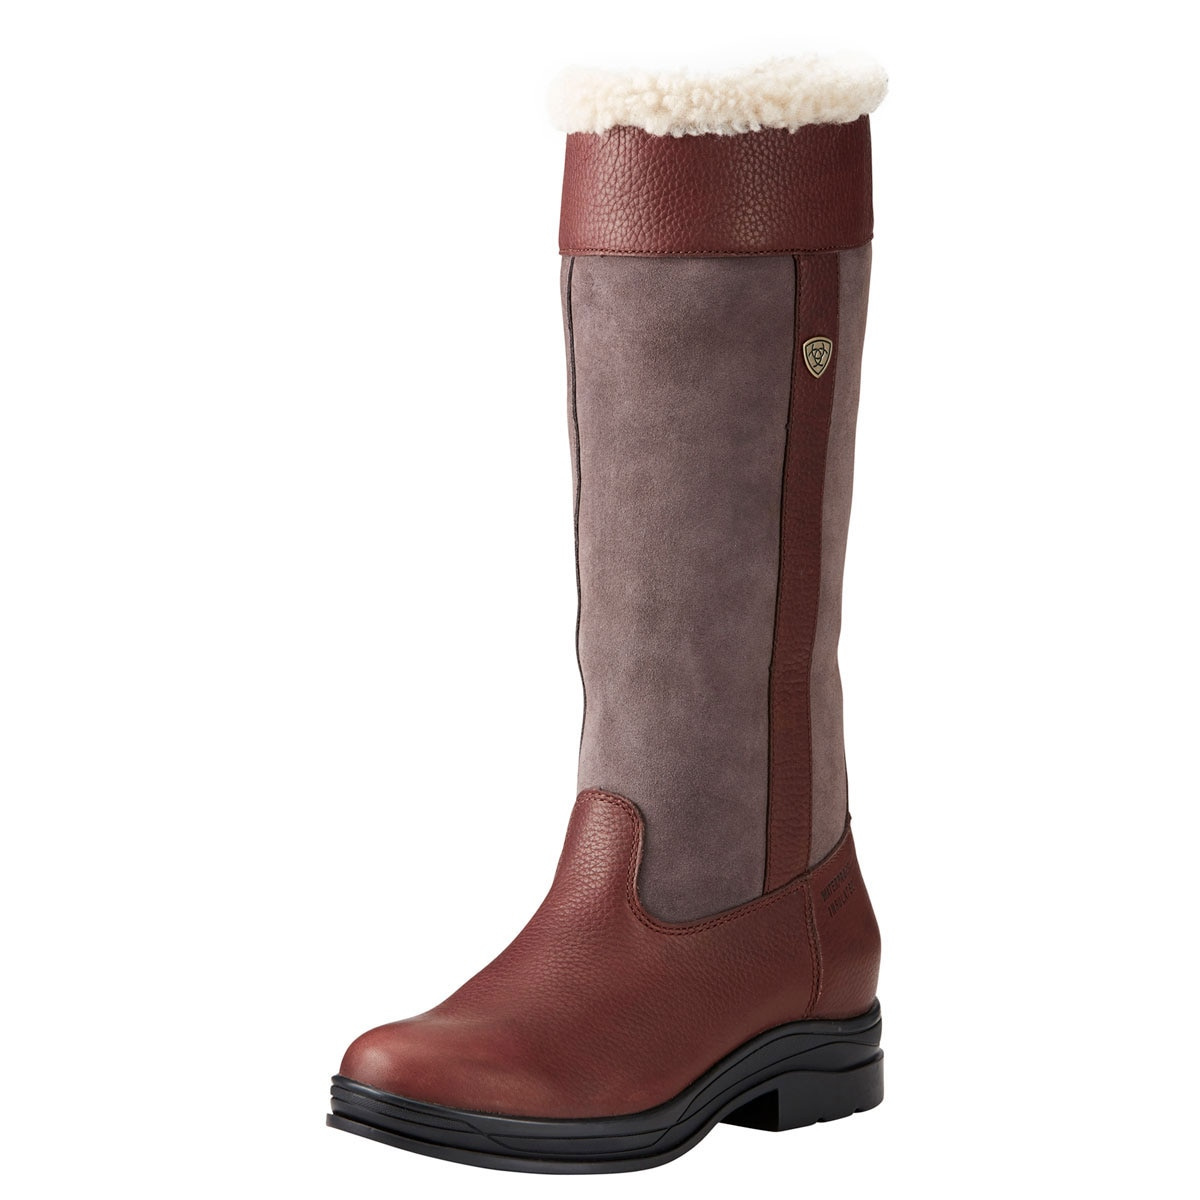 Ariat Windermere Fur H2O